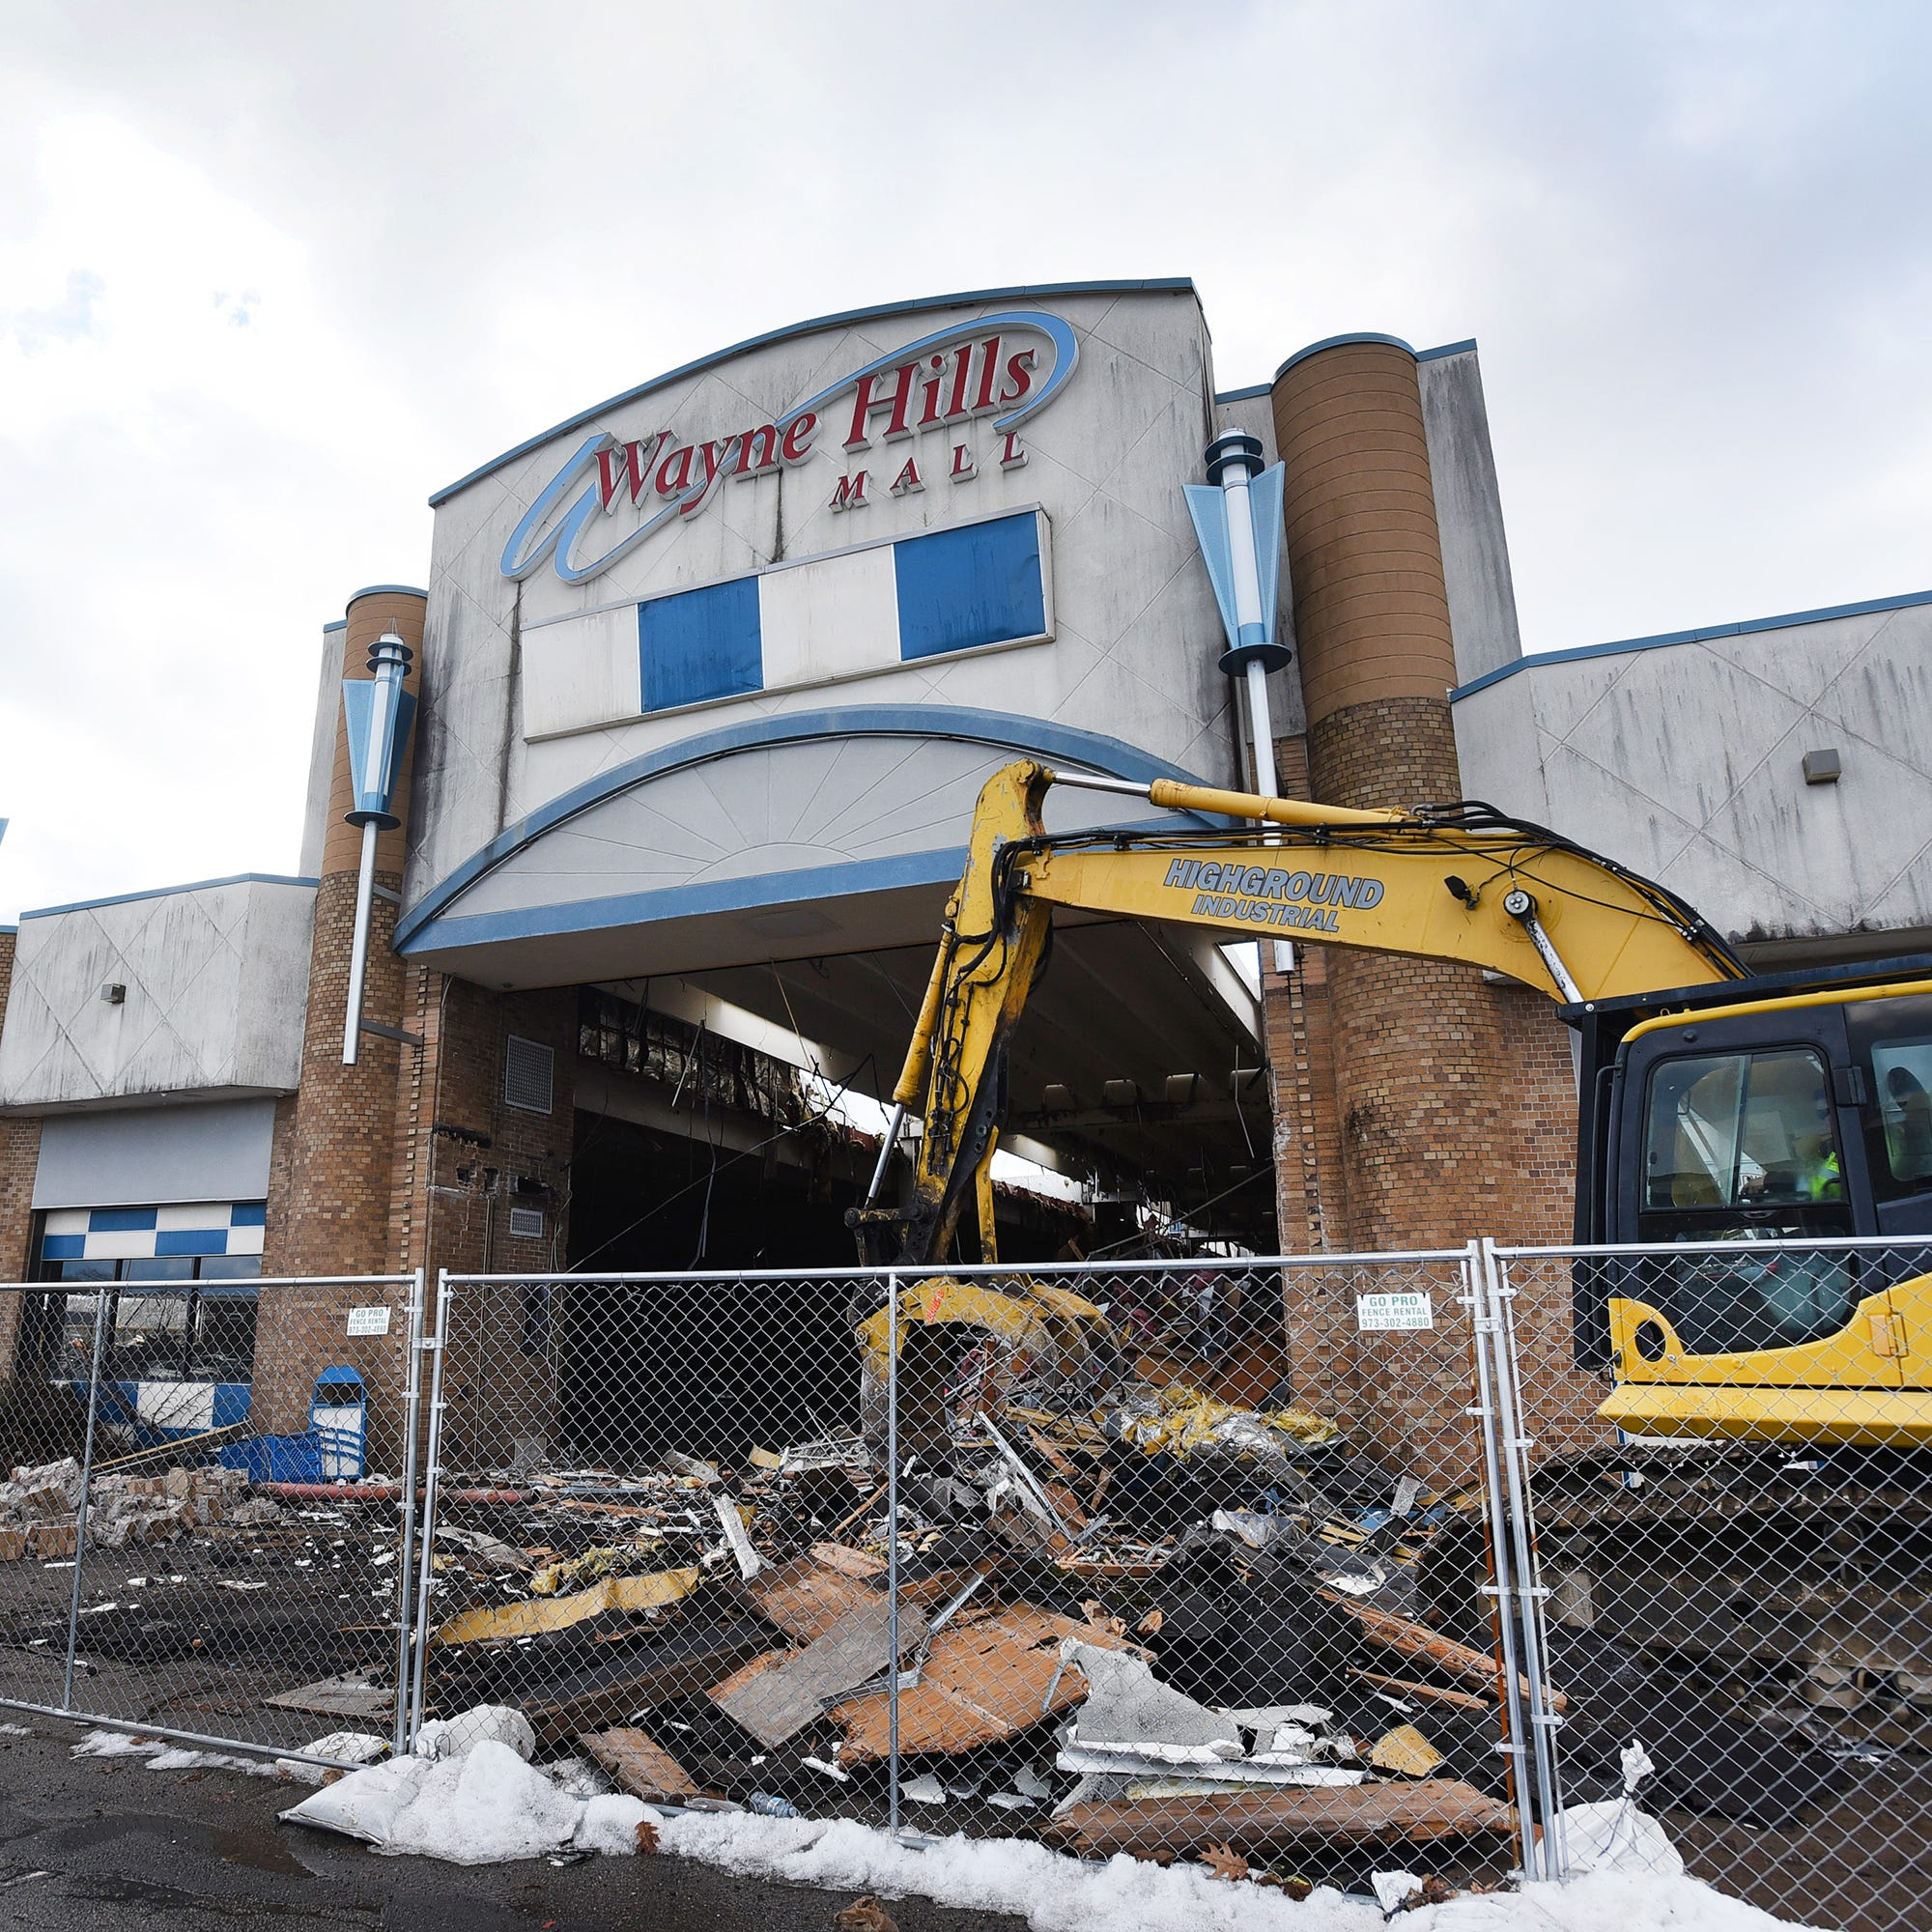 Wayne Hills Mall demolition underway